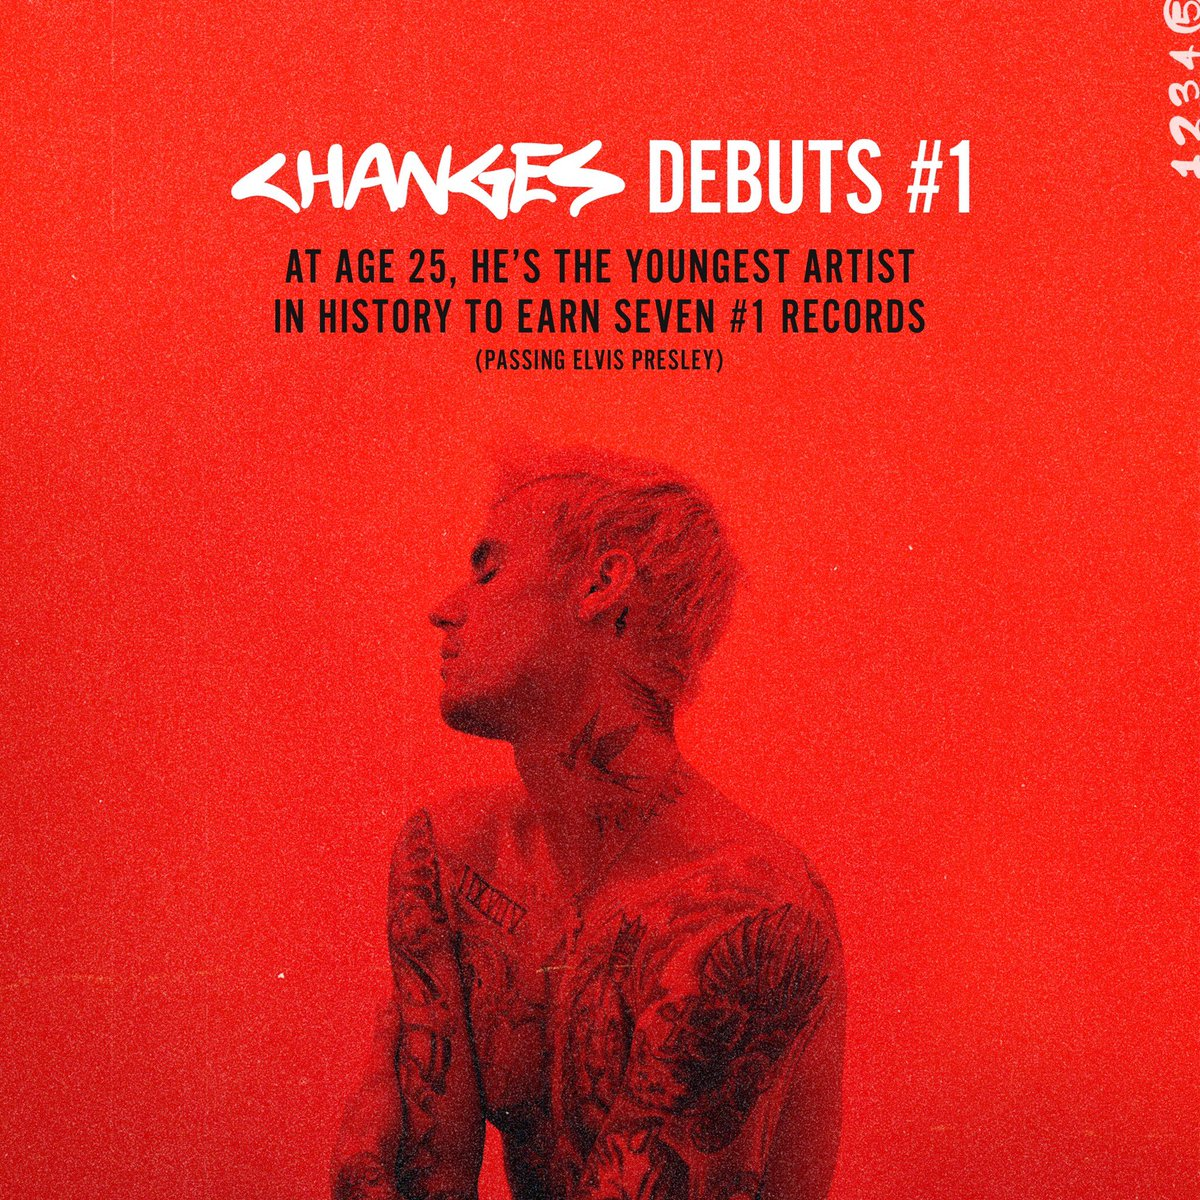 Replying to @bieberfever: #CHANGES DEBUTS AT #1